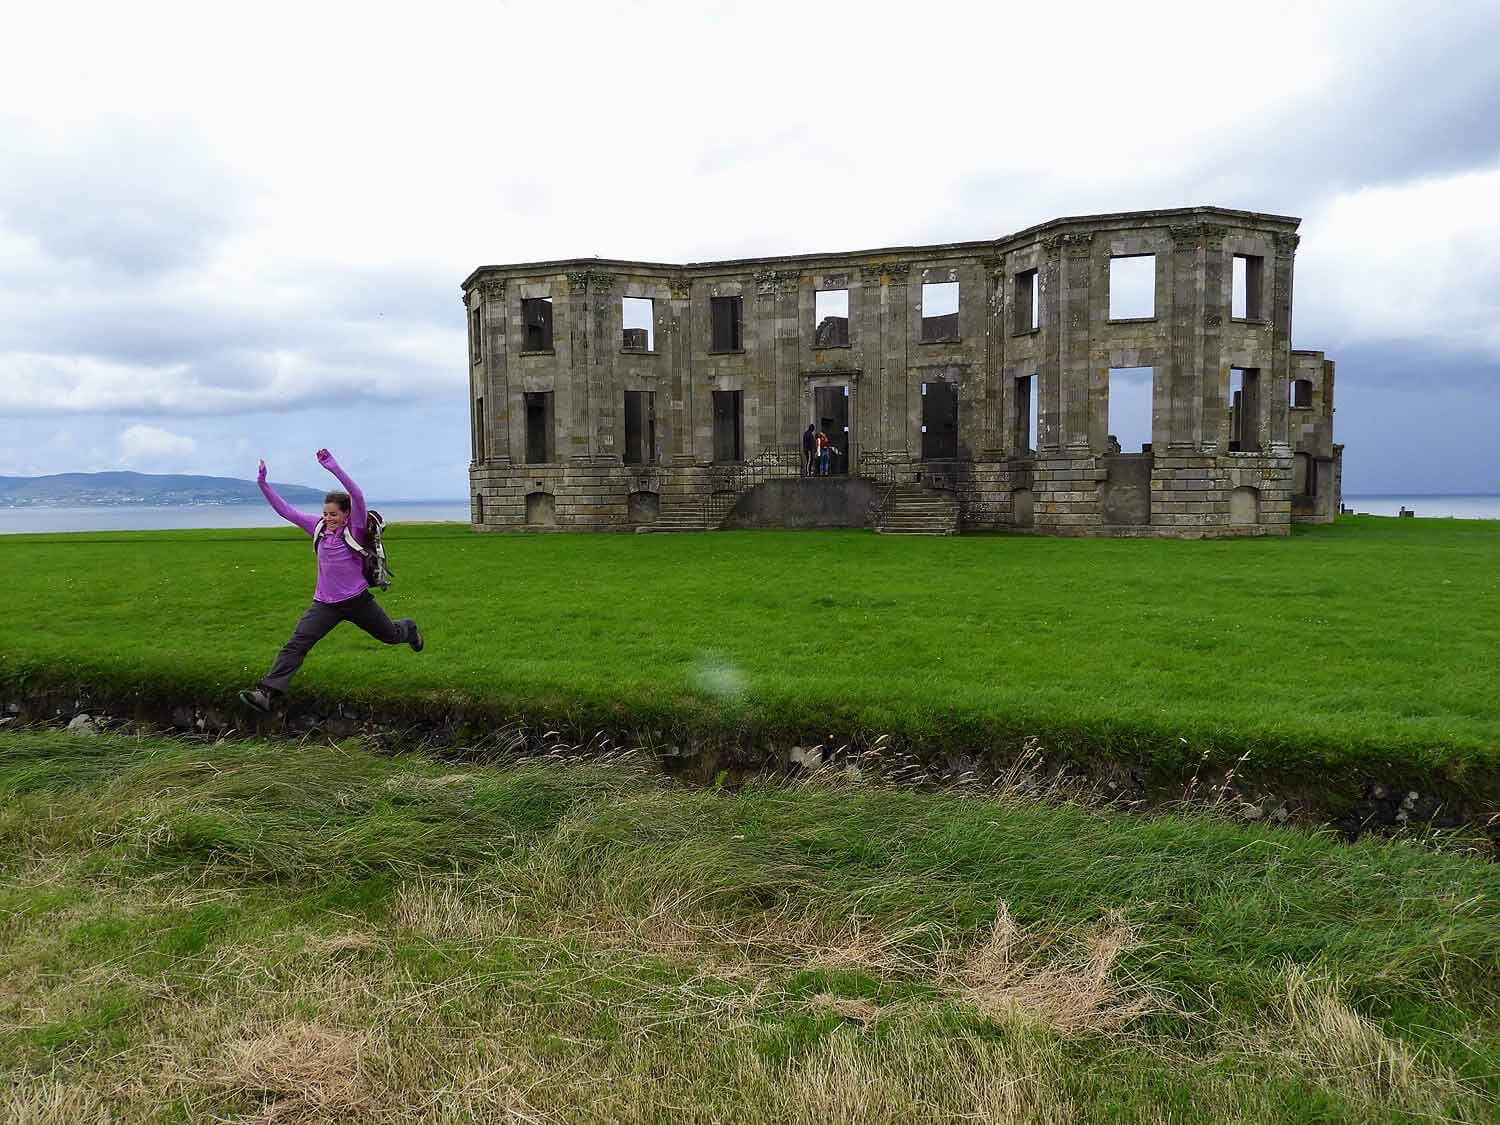 northern-ireland-coast-downhill-demesne-national-trust-ruins-wifey-jump.jpg